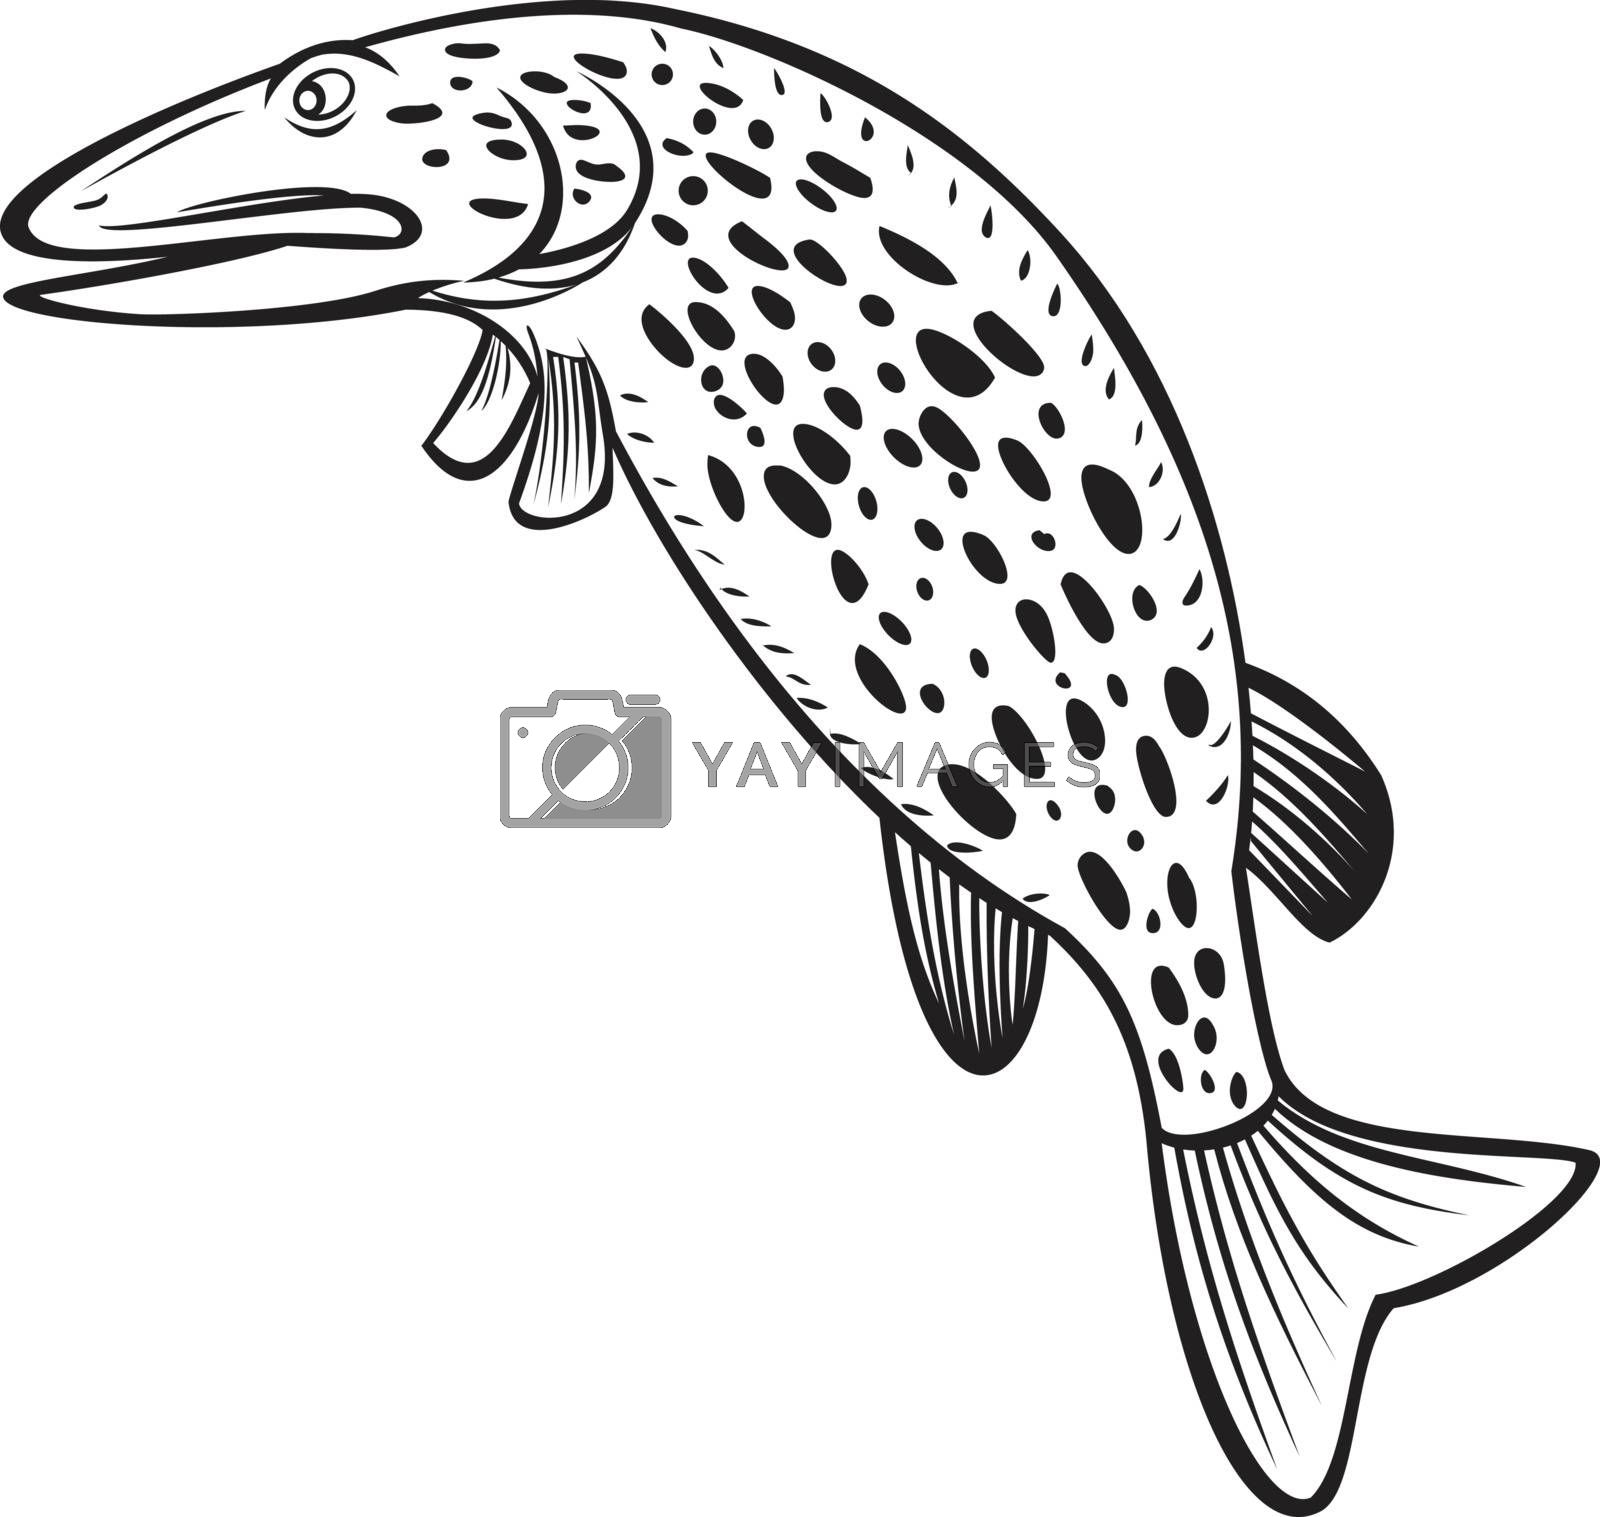 Cartoon style illustration of a northern pike Esox lucius, a species of carnivorous fish of the genus Esox jumping up on isolated background done in black and white.